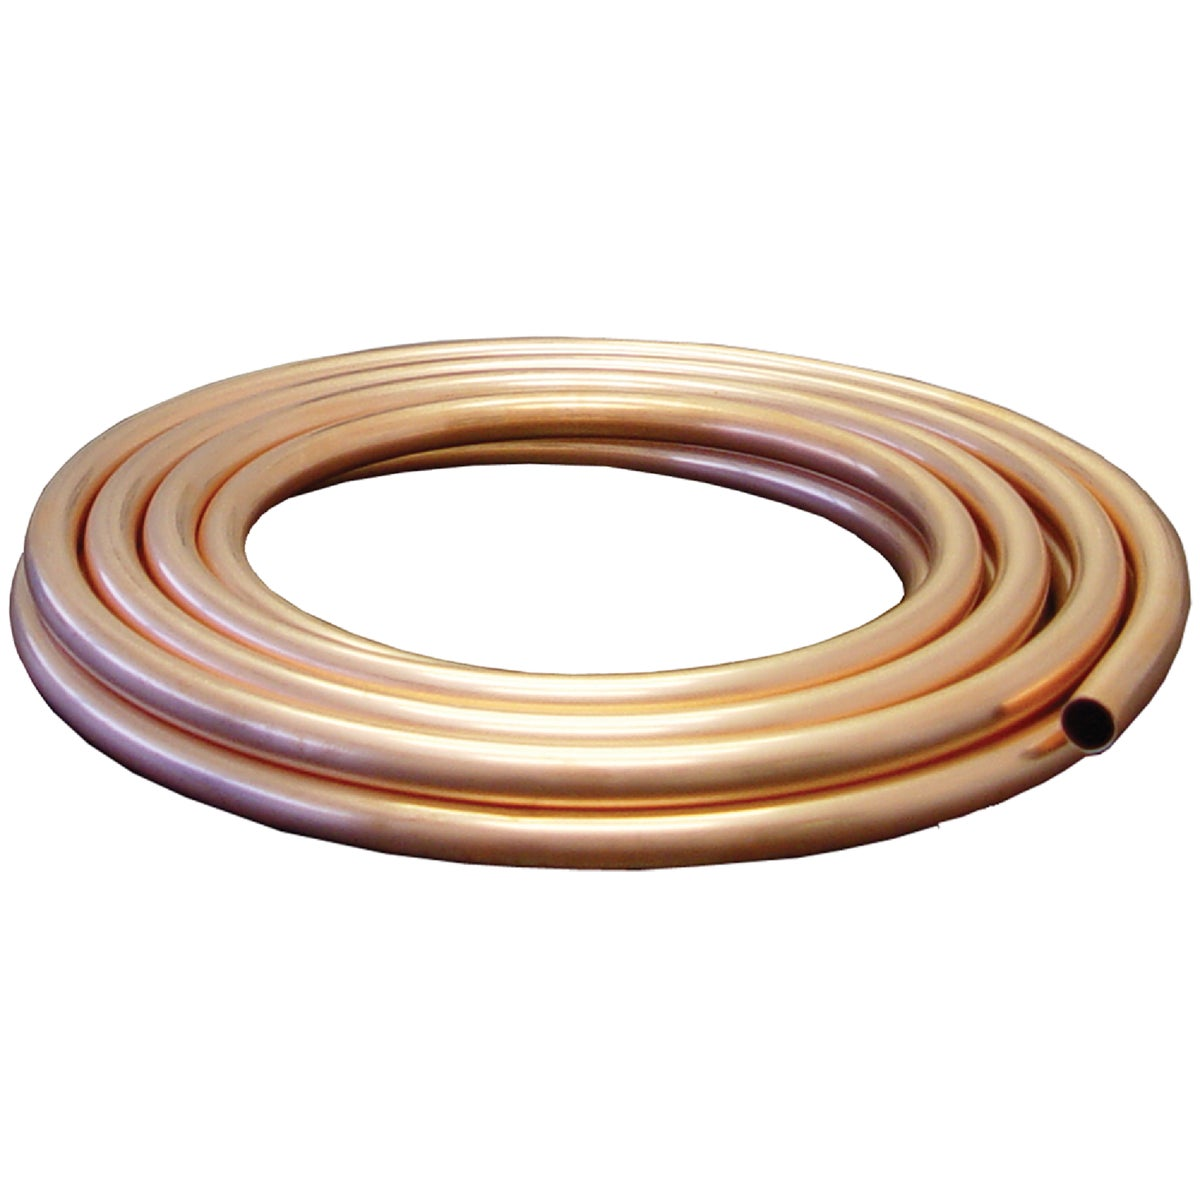 "1/2""ODX20'UG COPPER COIL - UT08020 by Mueller B K"